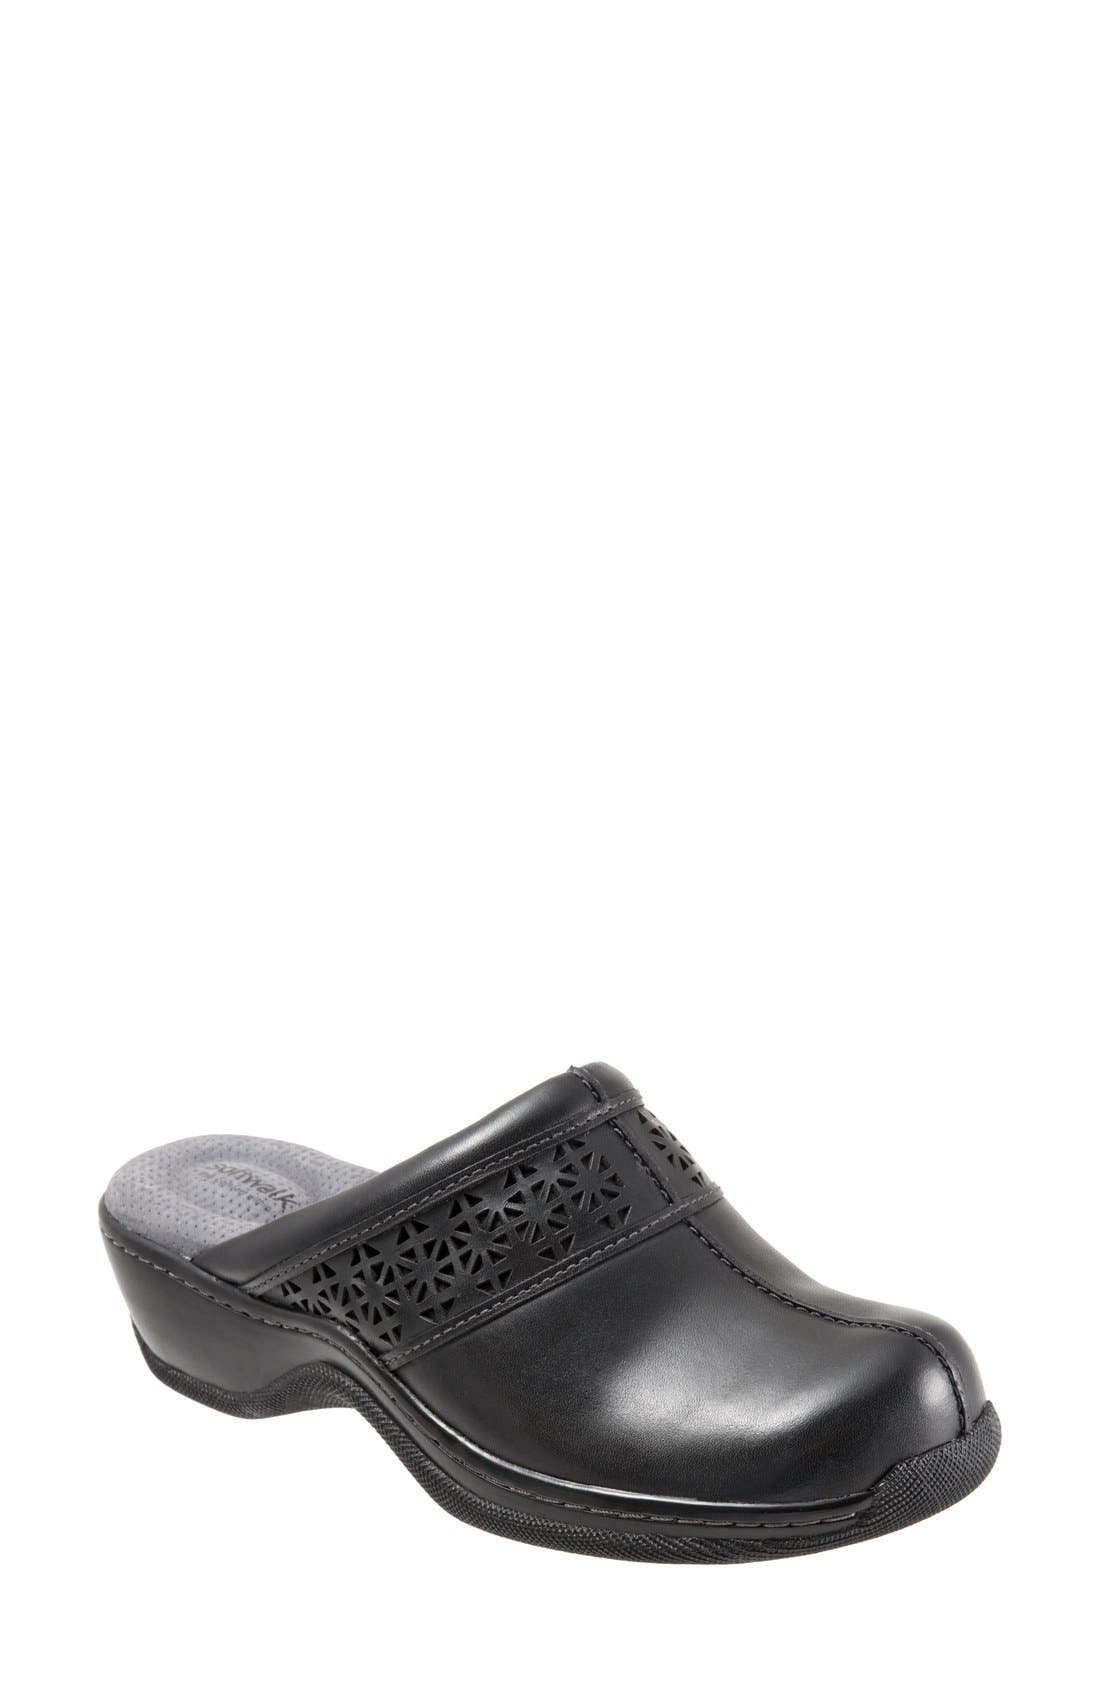 'Abby' Clog,                         Main,                         color, BLACK LEATHER